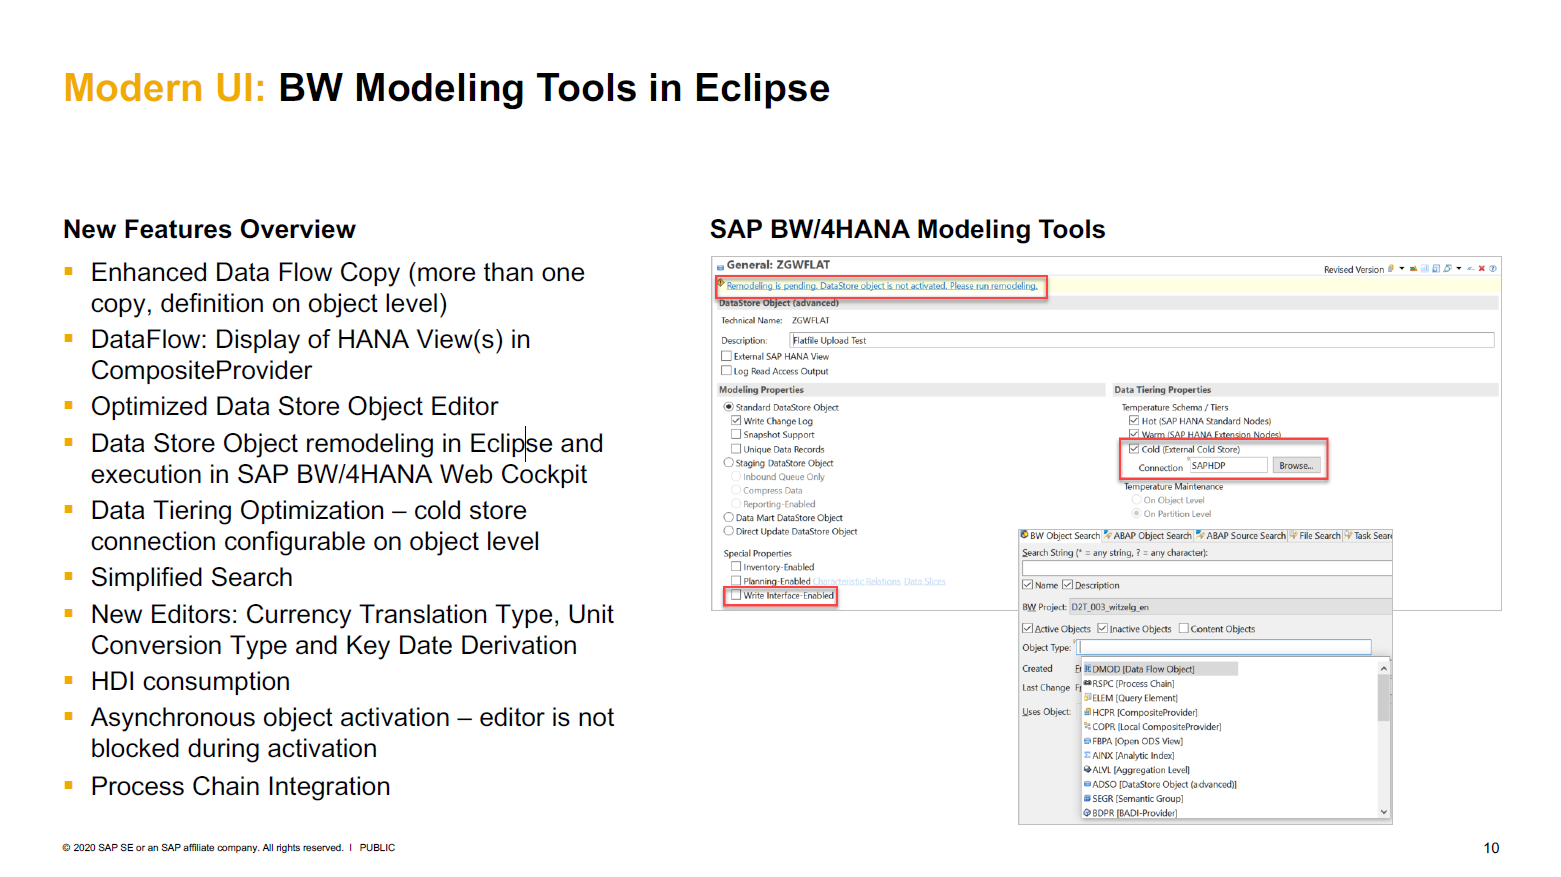 BW Modeling Tools in Eclipse